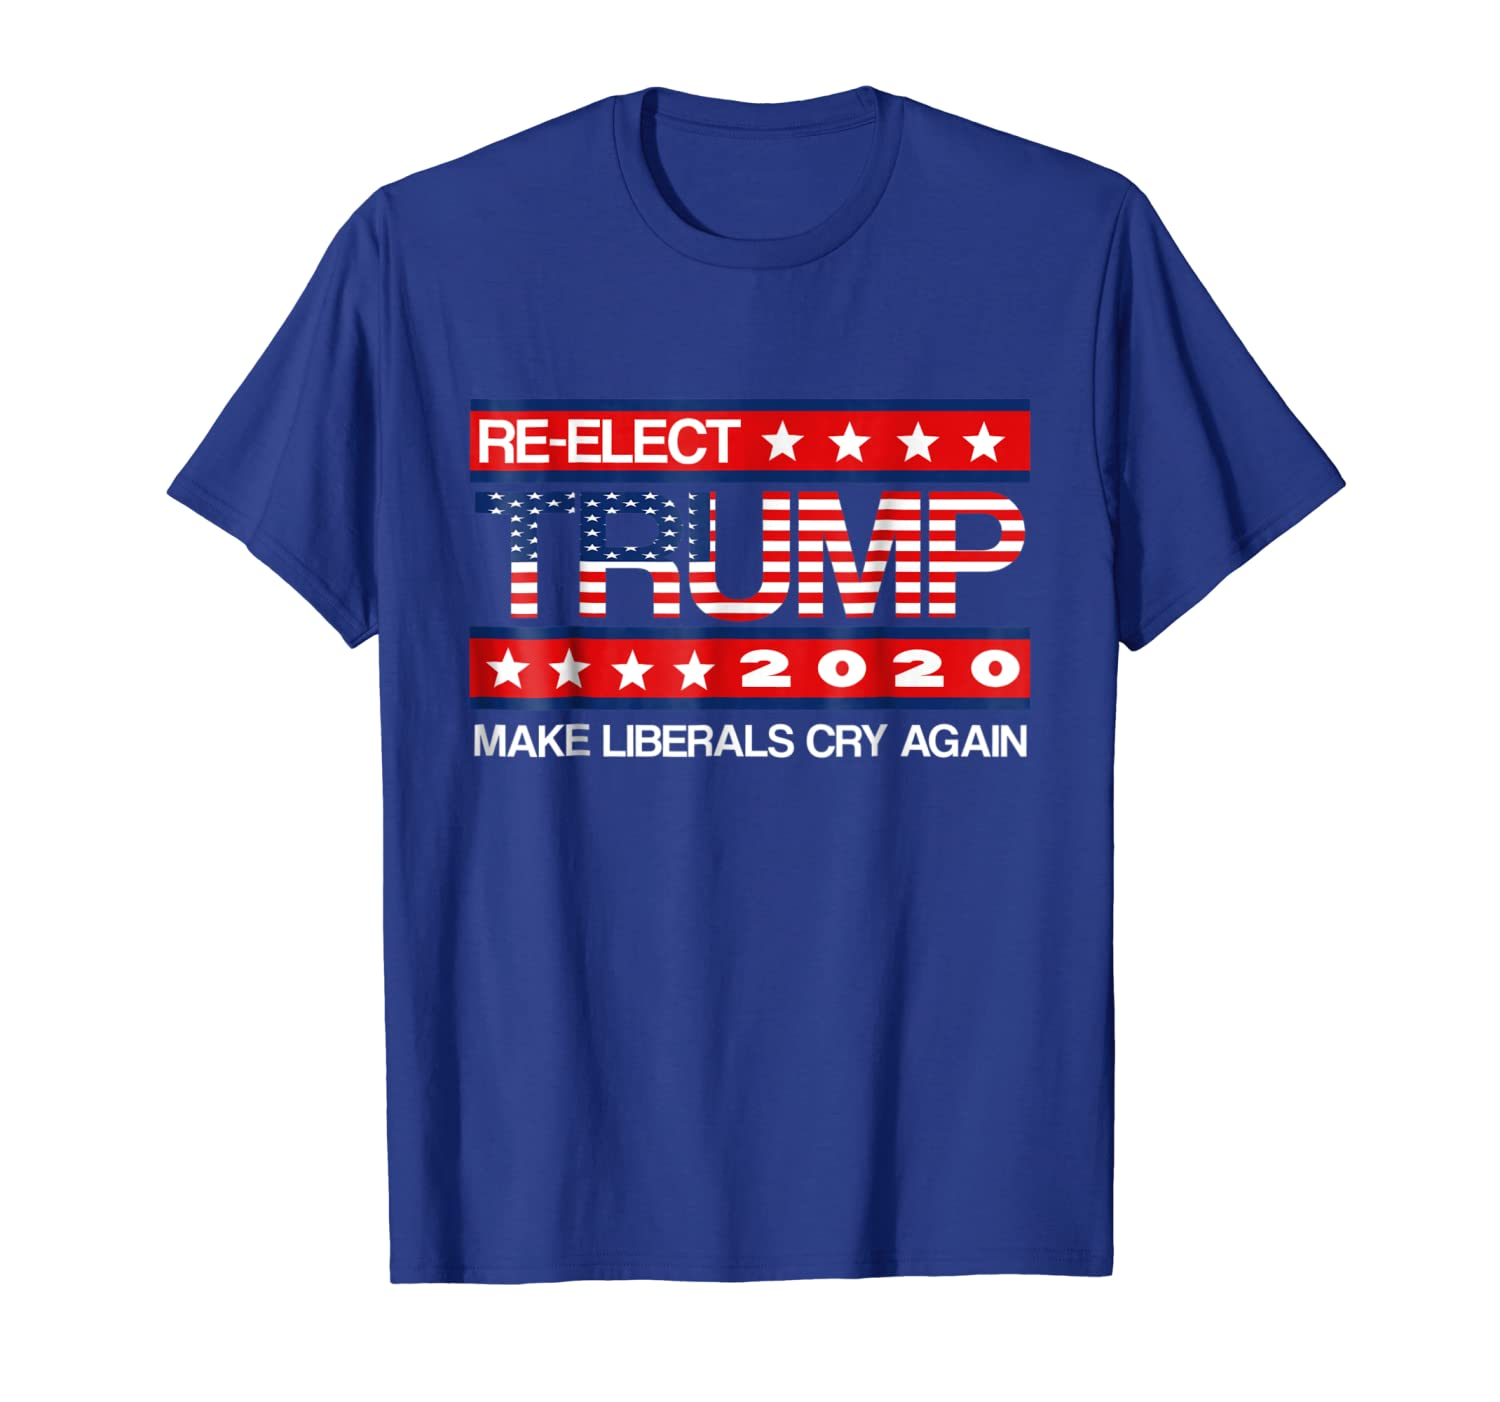 ec07aa435 Amazon.com: Donald Trump Election 2020 Make Liberals Cry Again GOP Shirt:  Clothing